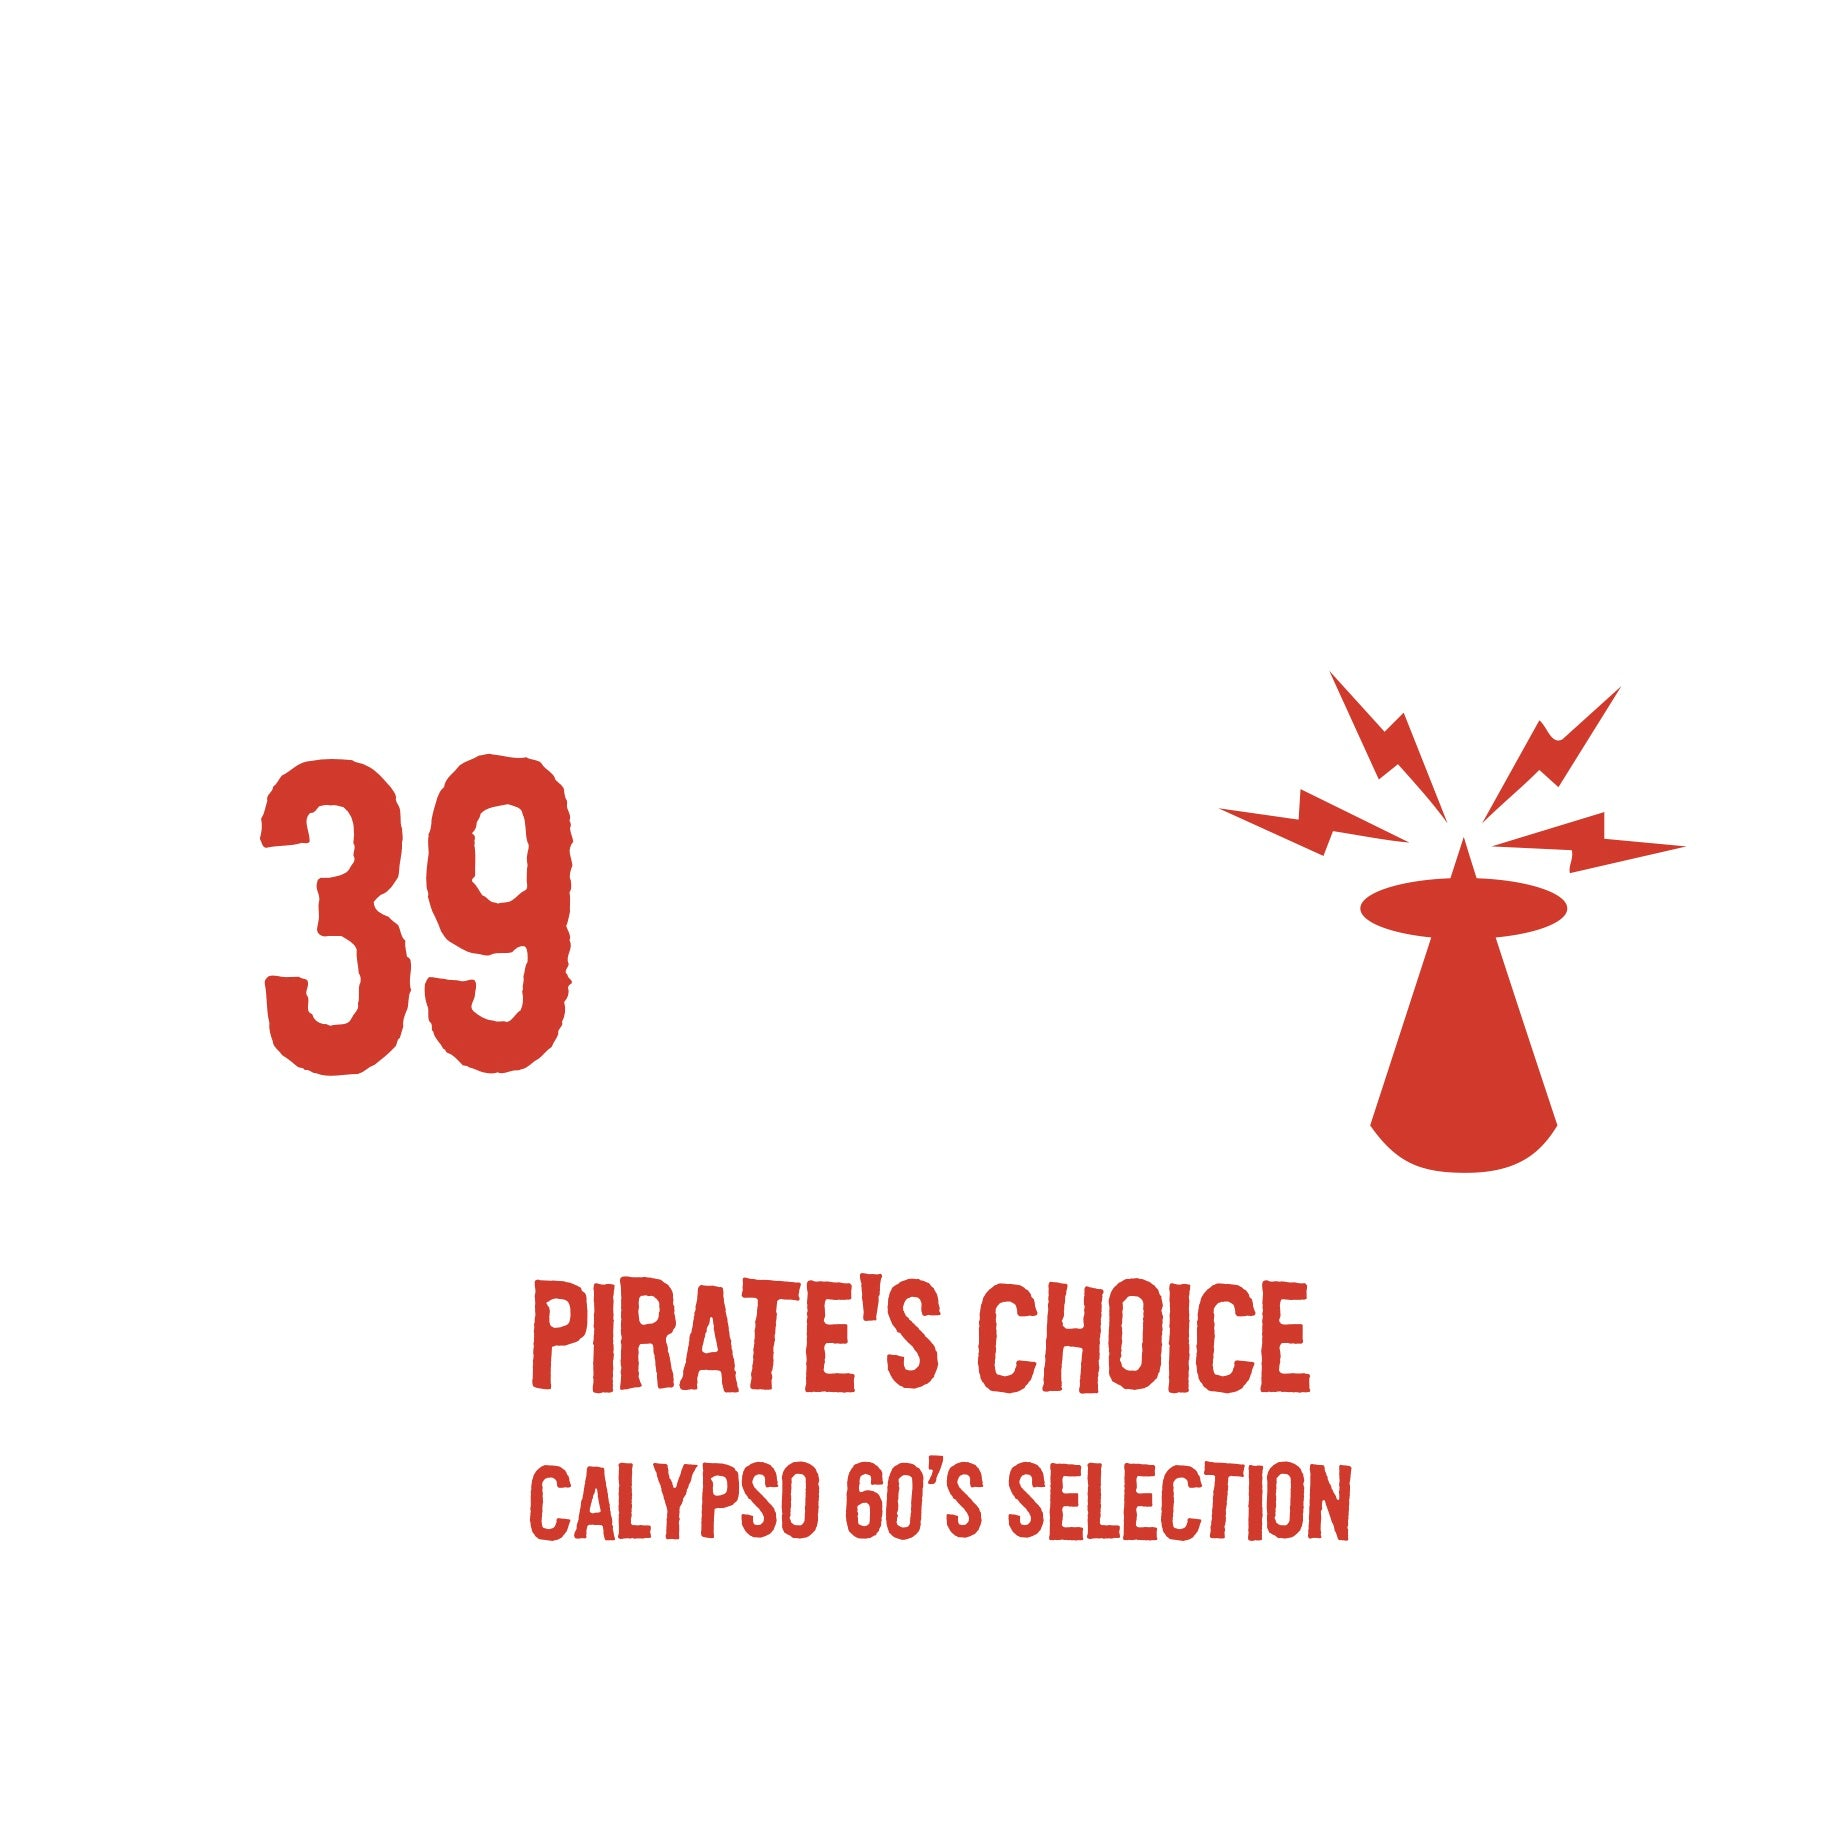 PIRATES CHOICE [Pt39 Calypso 60s Selection]